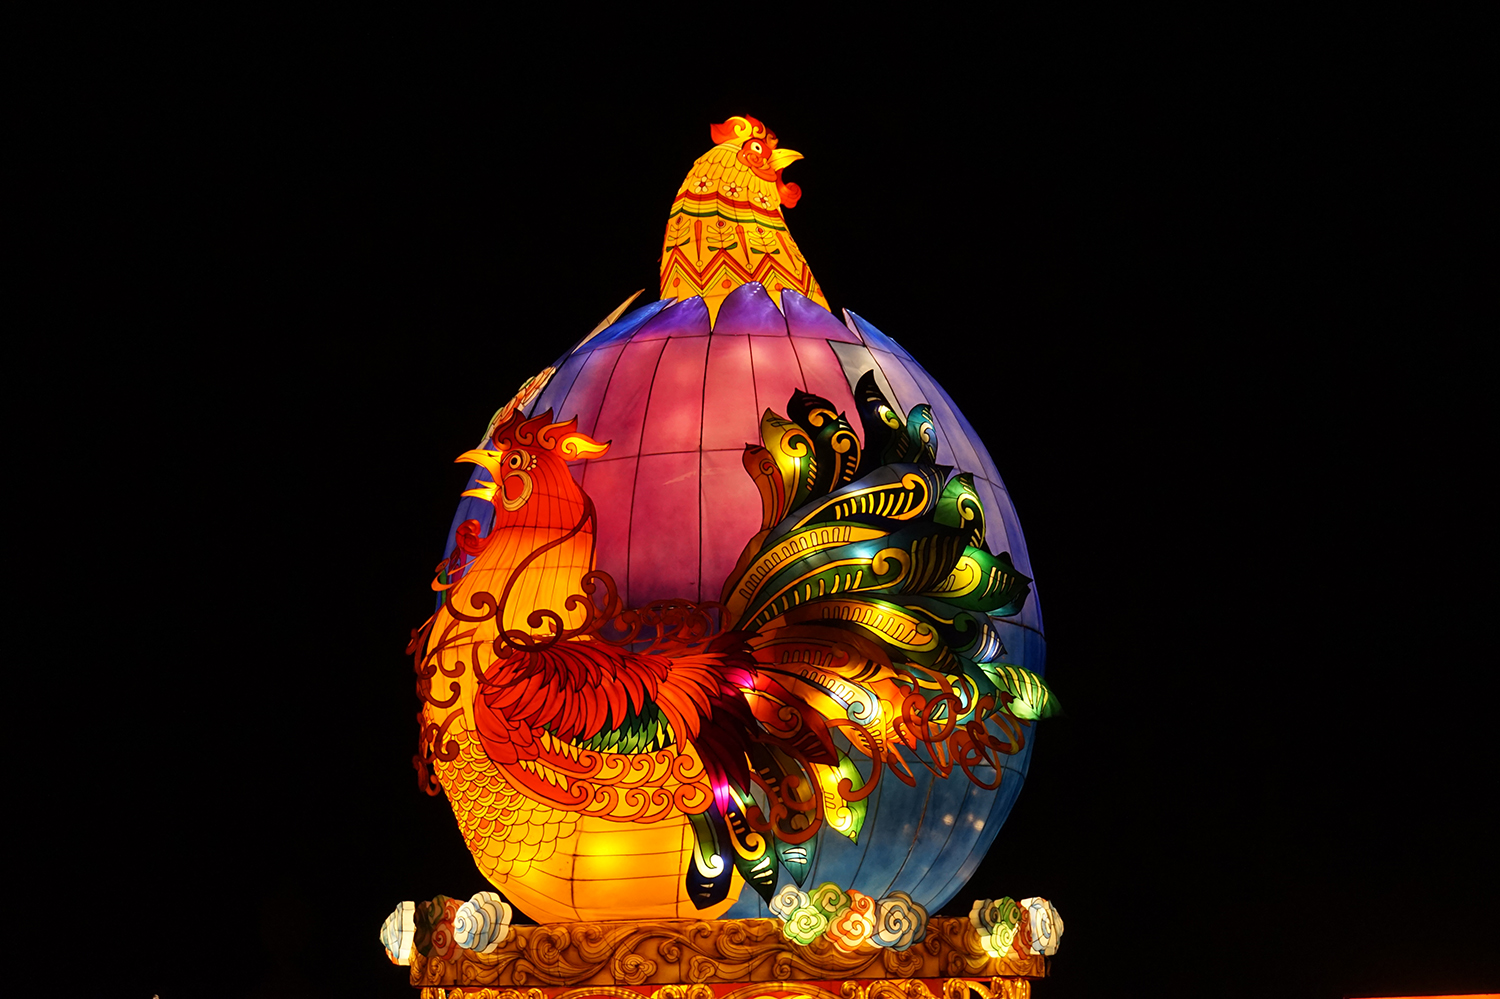 magical_lantern_festival_chiswick_23